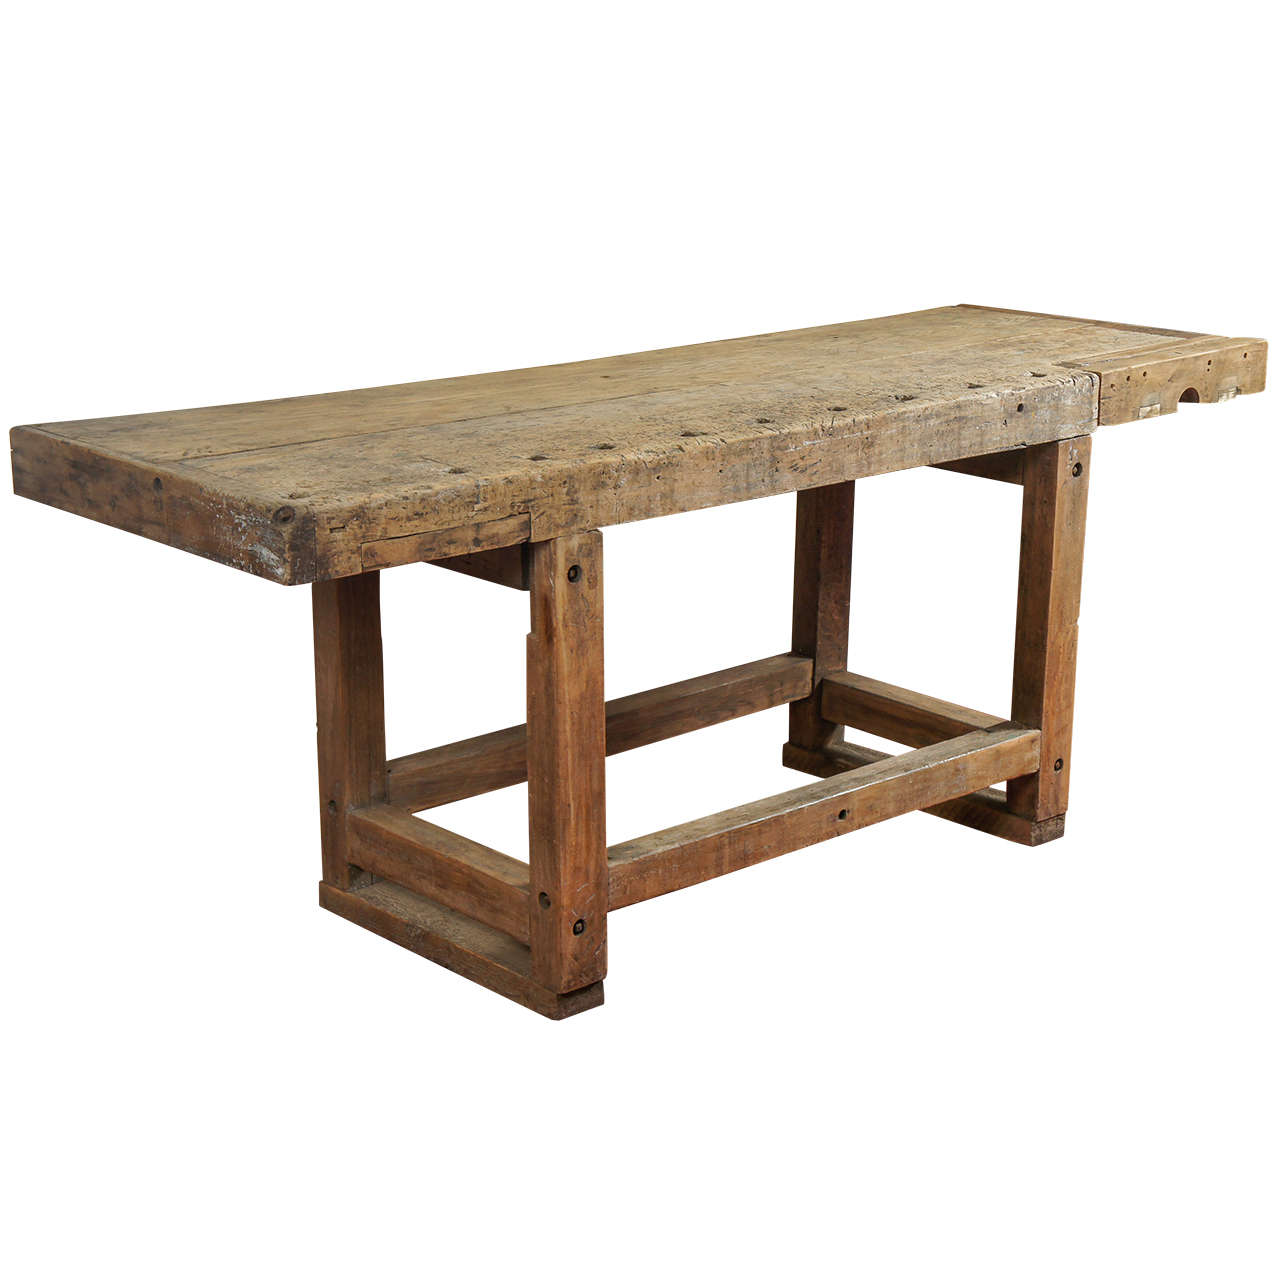 Industrial workbench kitchen island table at 1stdibs - Industrial kitchen tables ...